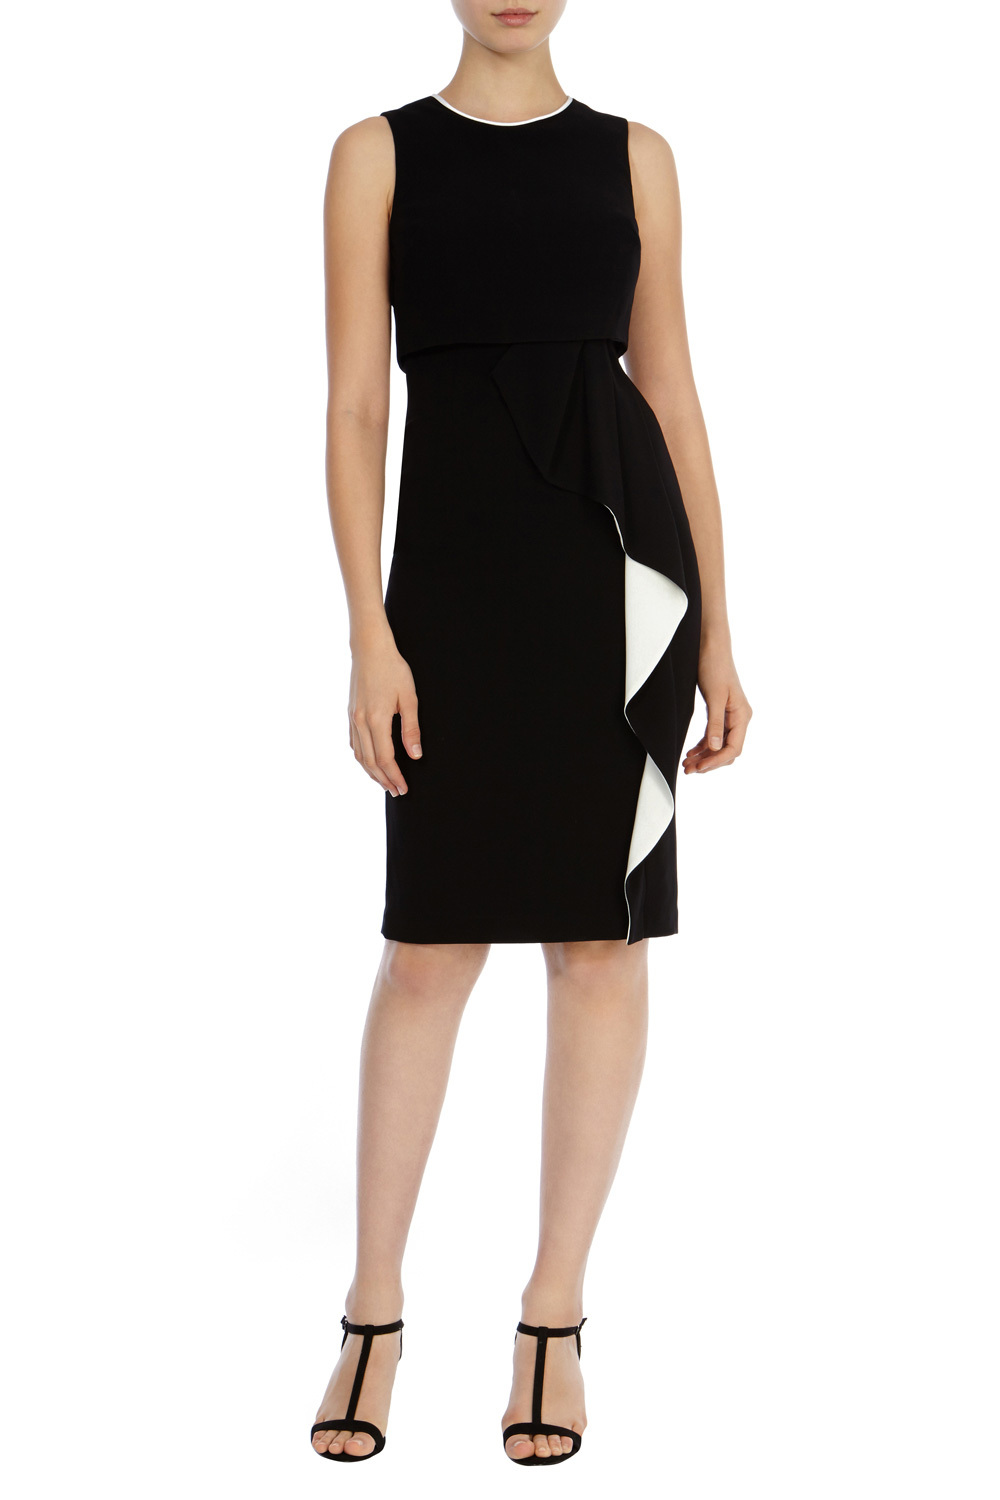 Lomax Colour Block Crepe Dress - style: shift; fit: tailored/fitted; sleeve style: sleeveless; predominant colour: black; length: just above the knee; fibres: polyester/polyamide - 100%; occasions: occasion; neckline: crew; hip detail: adds bulk at the hips; sleeve length: sleeveless; trends: monochrome; pattern type: fabric; pattern: colourblock; texture group: other - light to midweight; season: s/s 2016; wardrobe: event